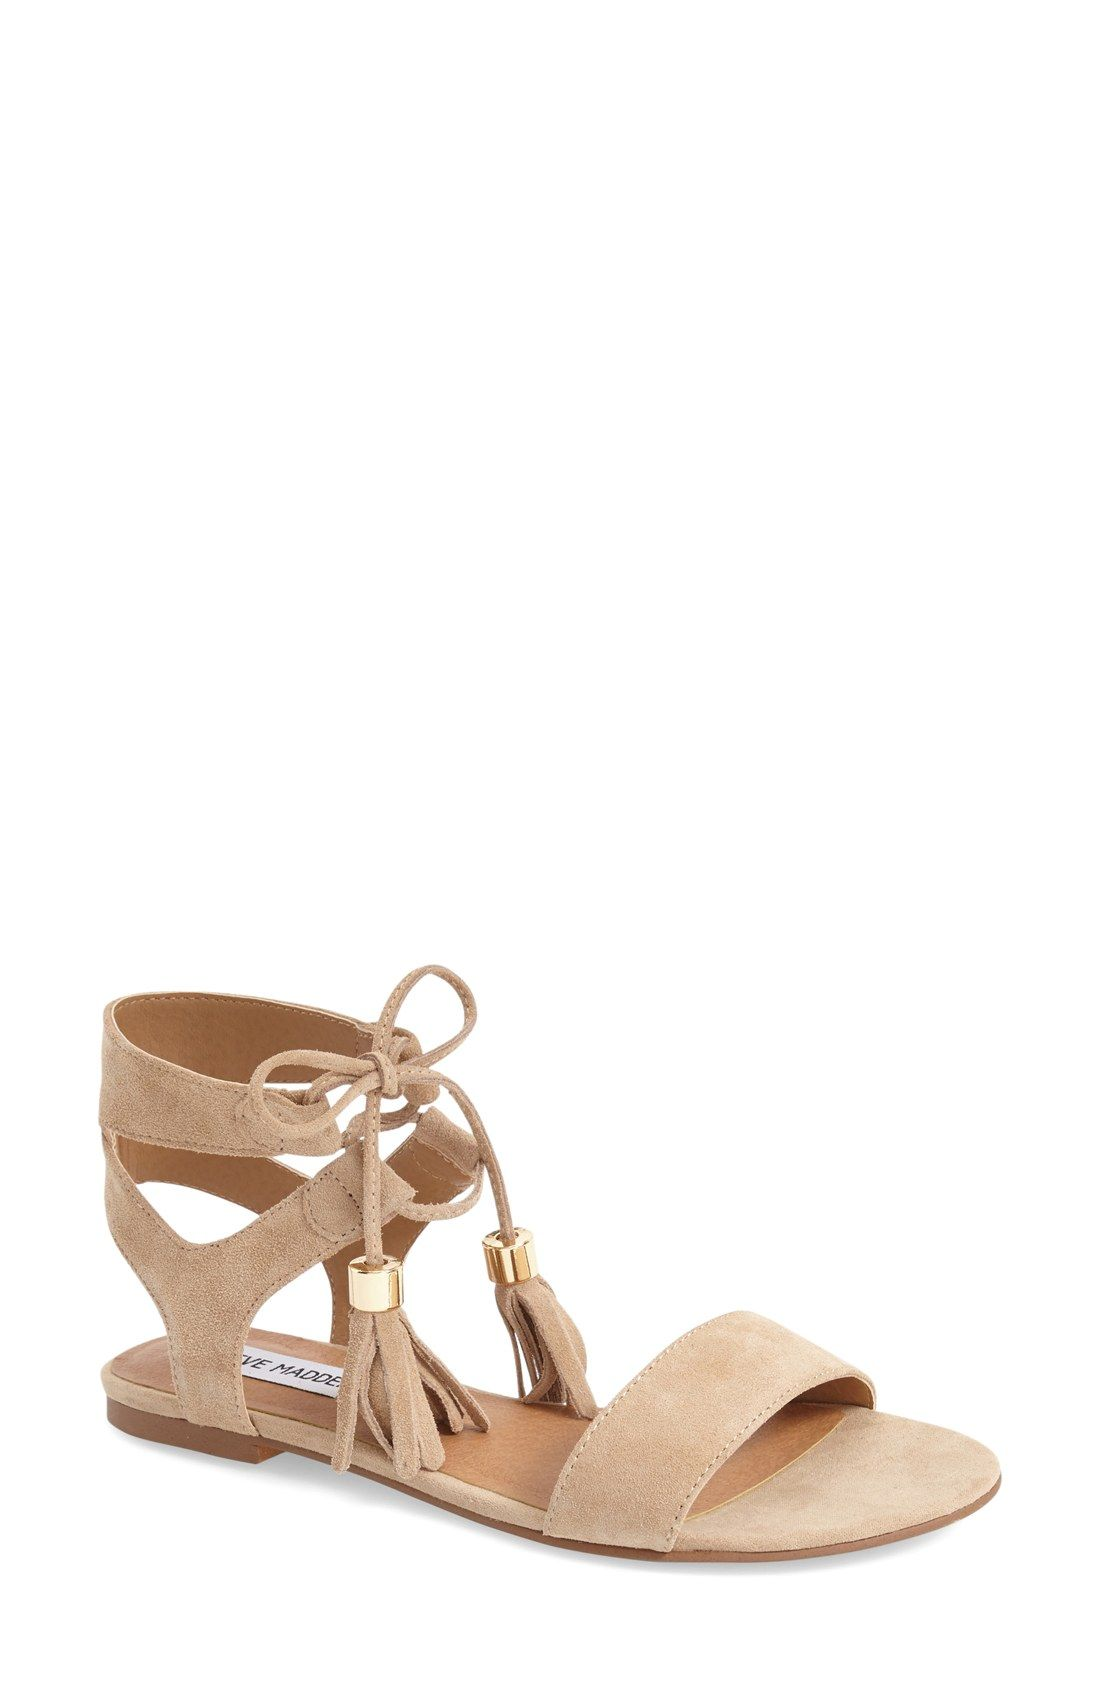 8cb5acb04 Head over heels for these trendy sandals with chic lace-up details ...